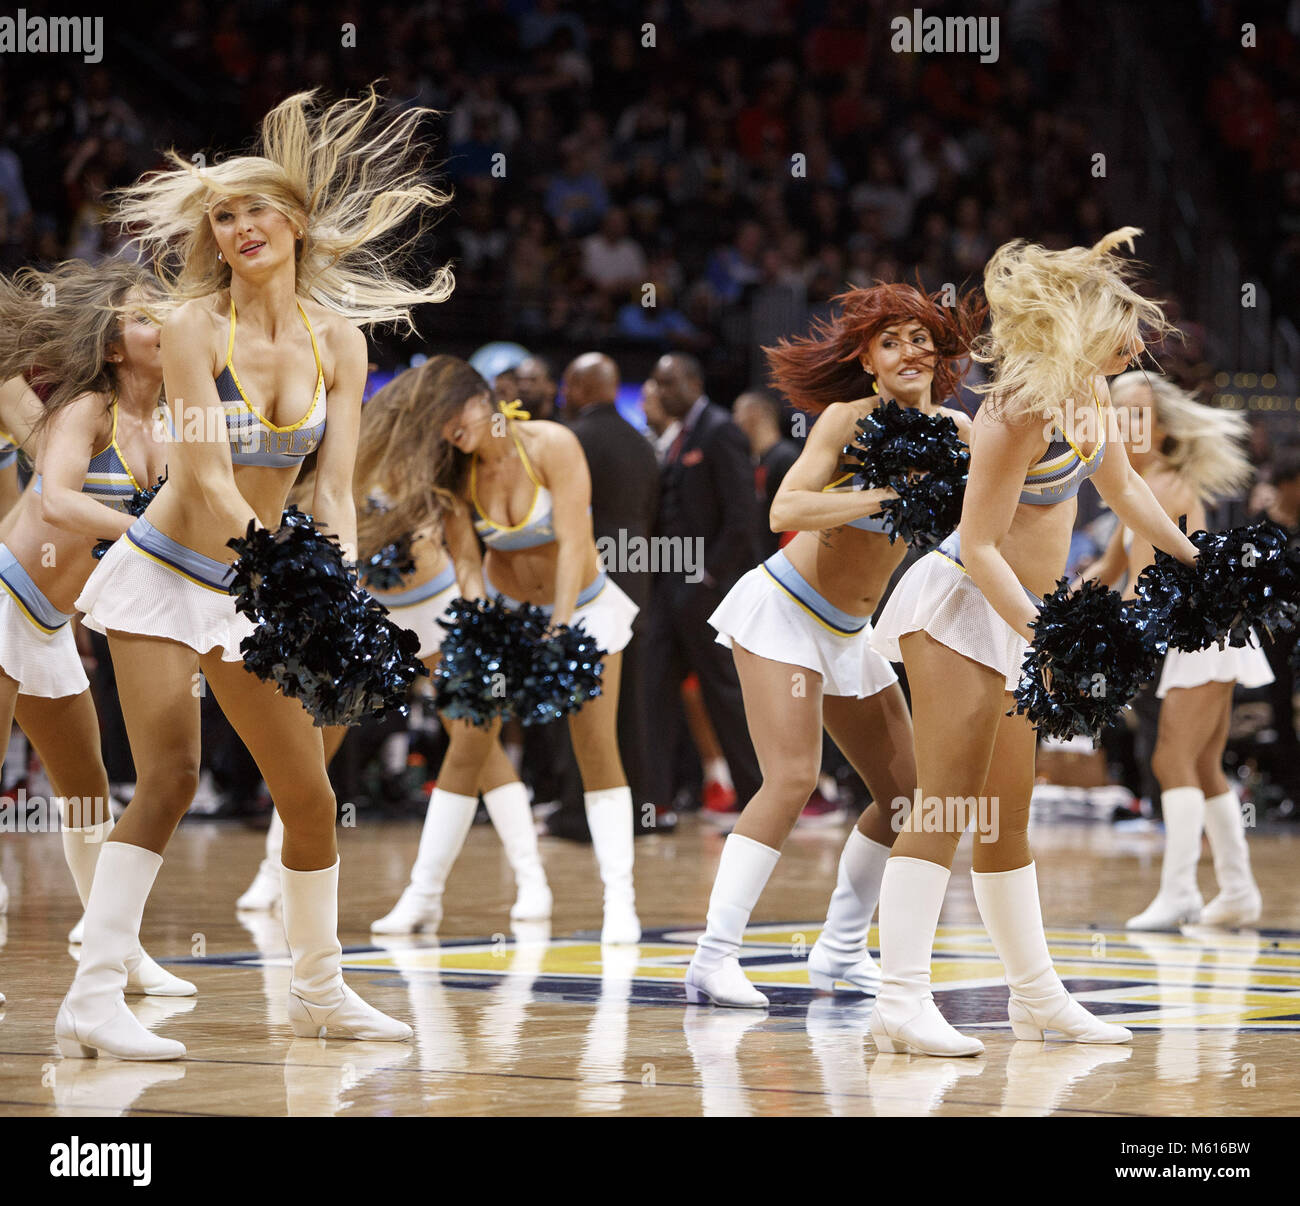 Denver Nuggets Dancers: 2018 119 Jpg Stock Photos & 2018 119 Jpg Stock Images